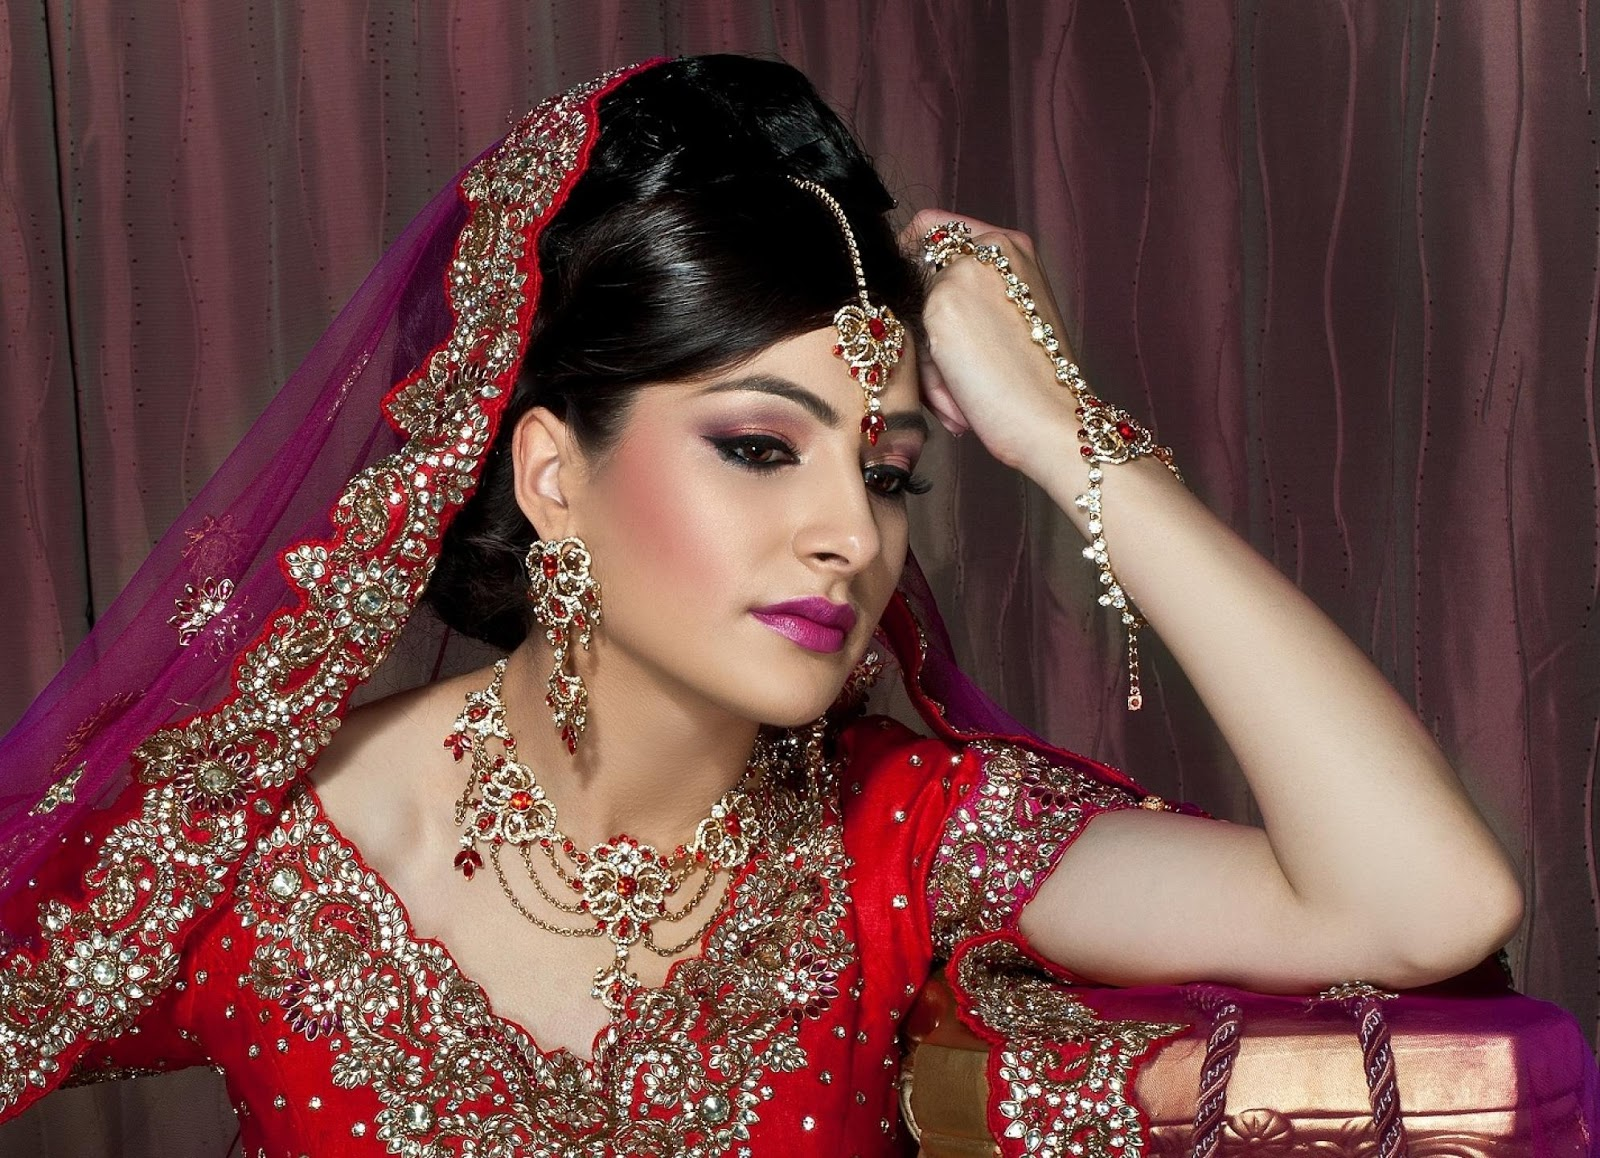 Wallpapers   Images   Picpile: Best Indian bridal wedding ...